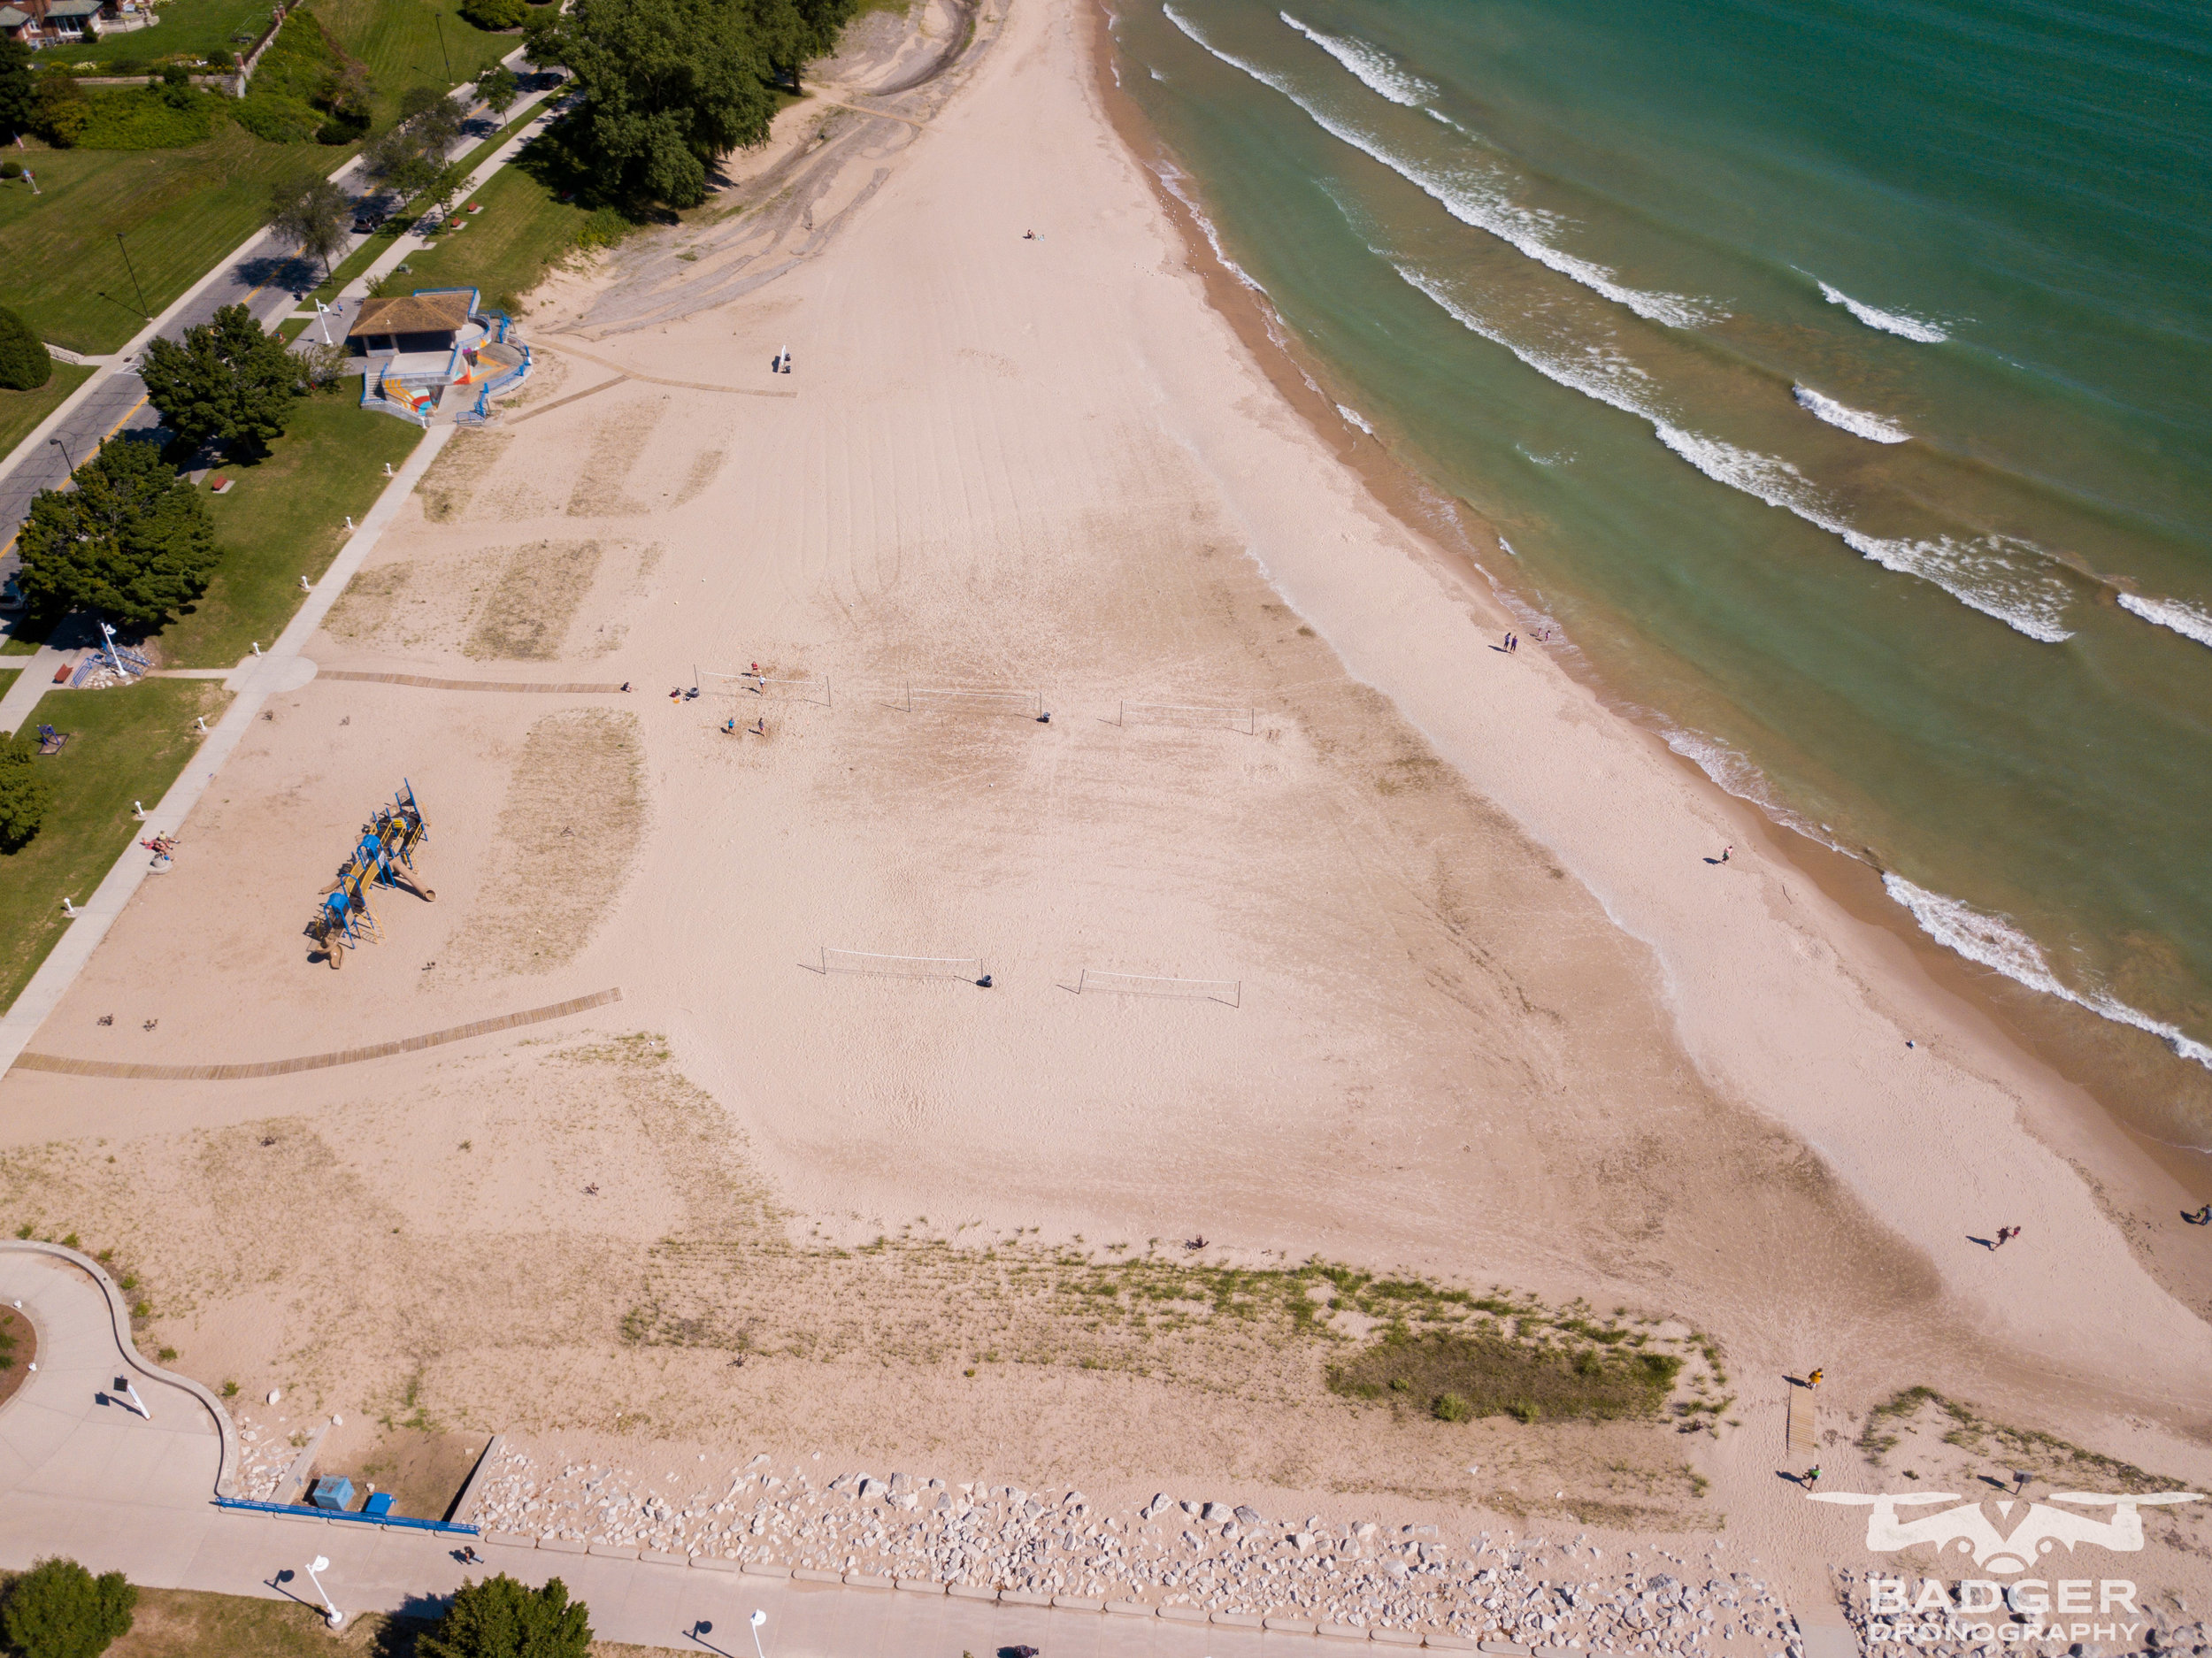 Badger Dronography madison drone photography-024.jpg